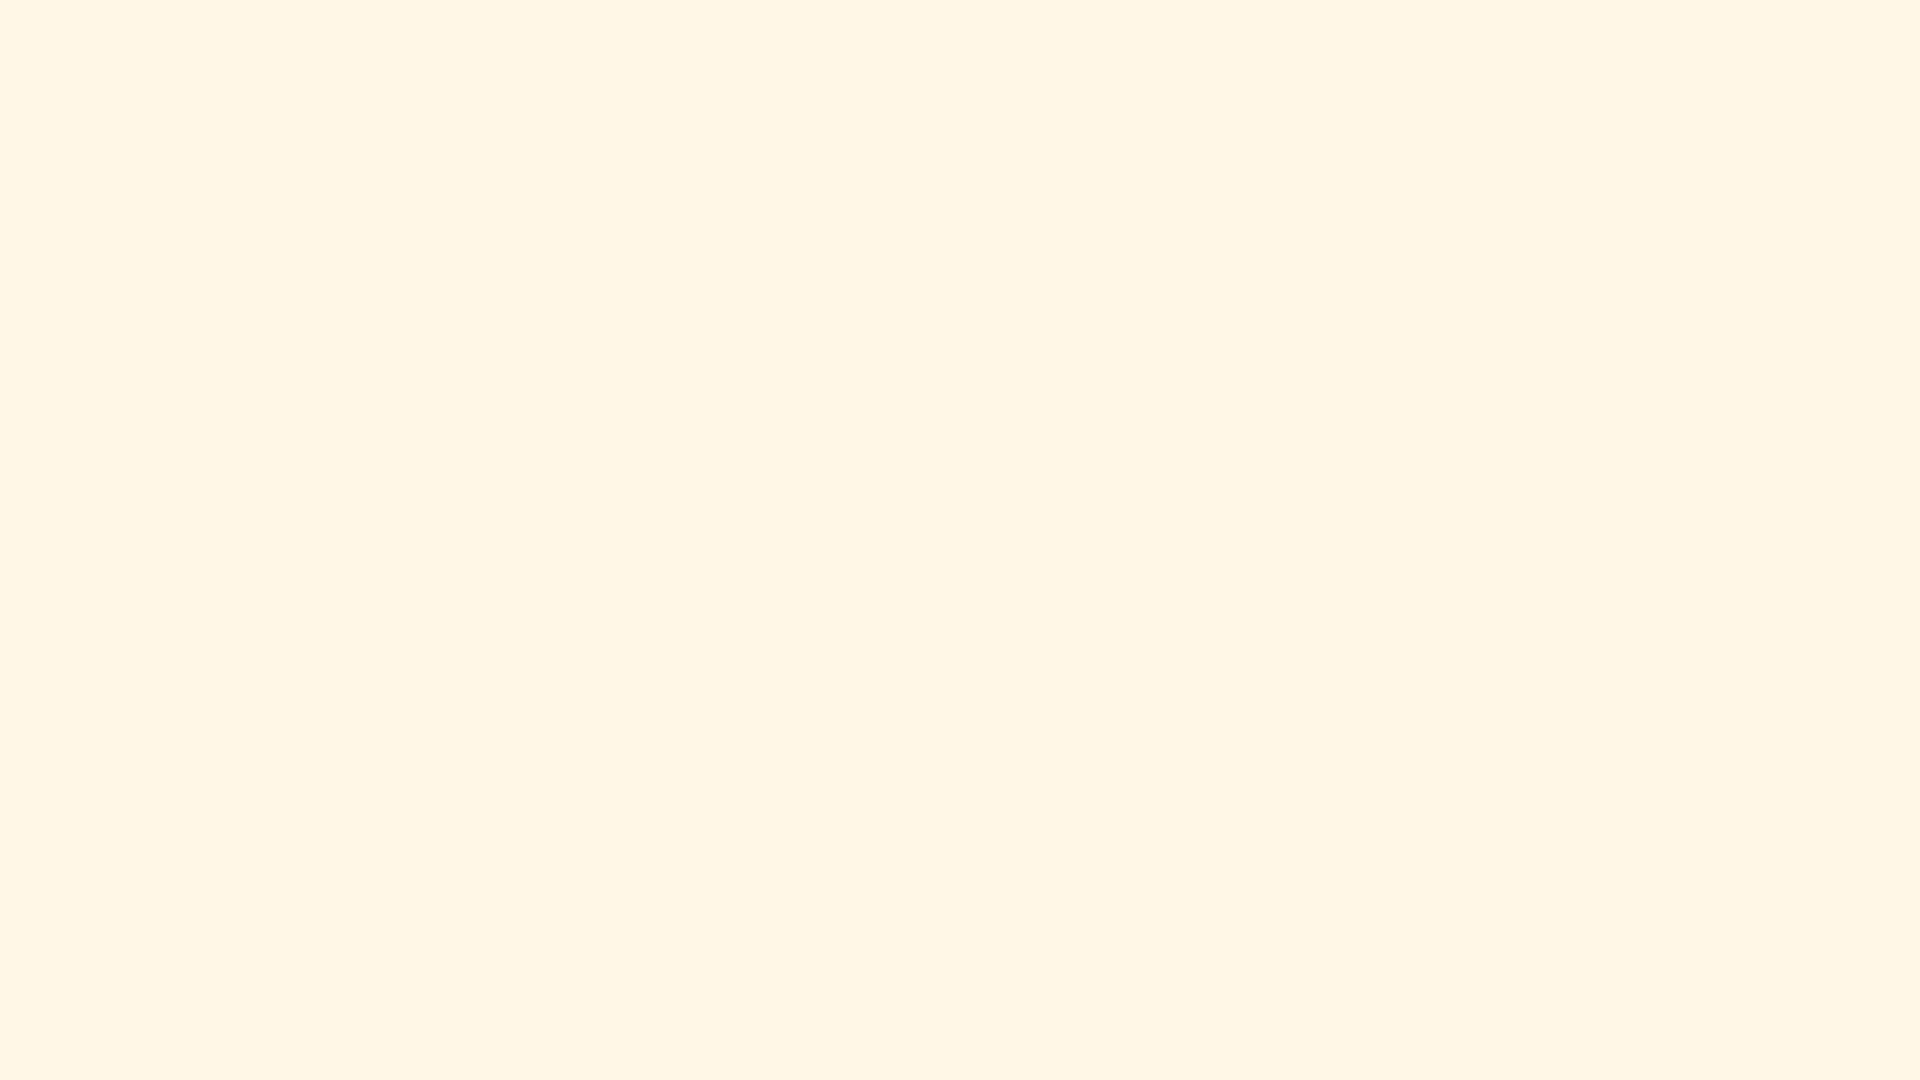 1920x1080 Cosmic Latte Solid Color Background